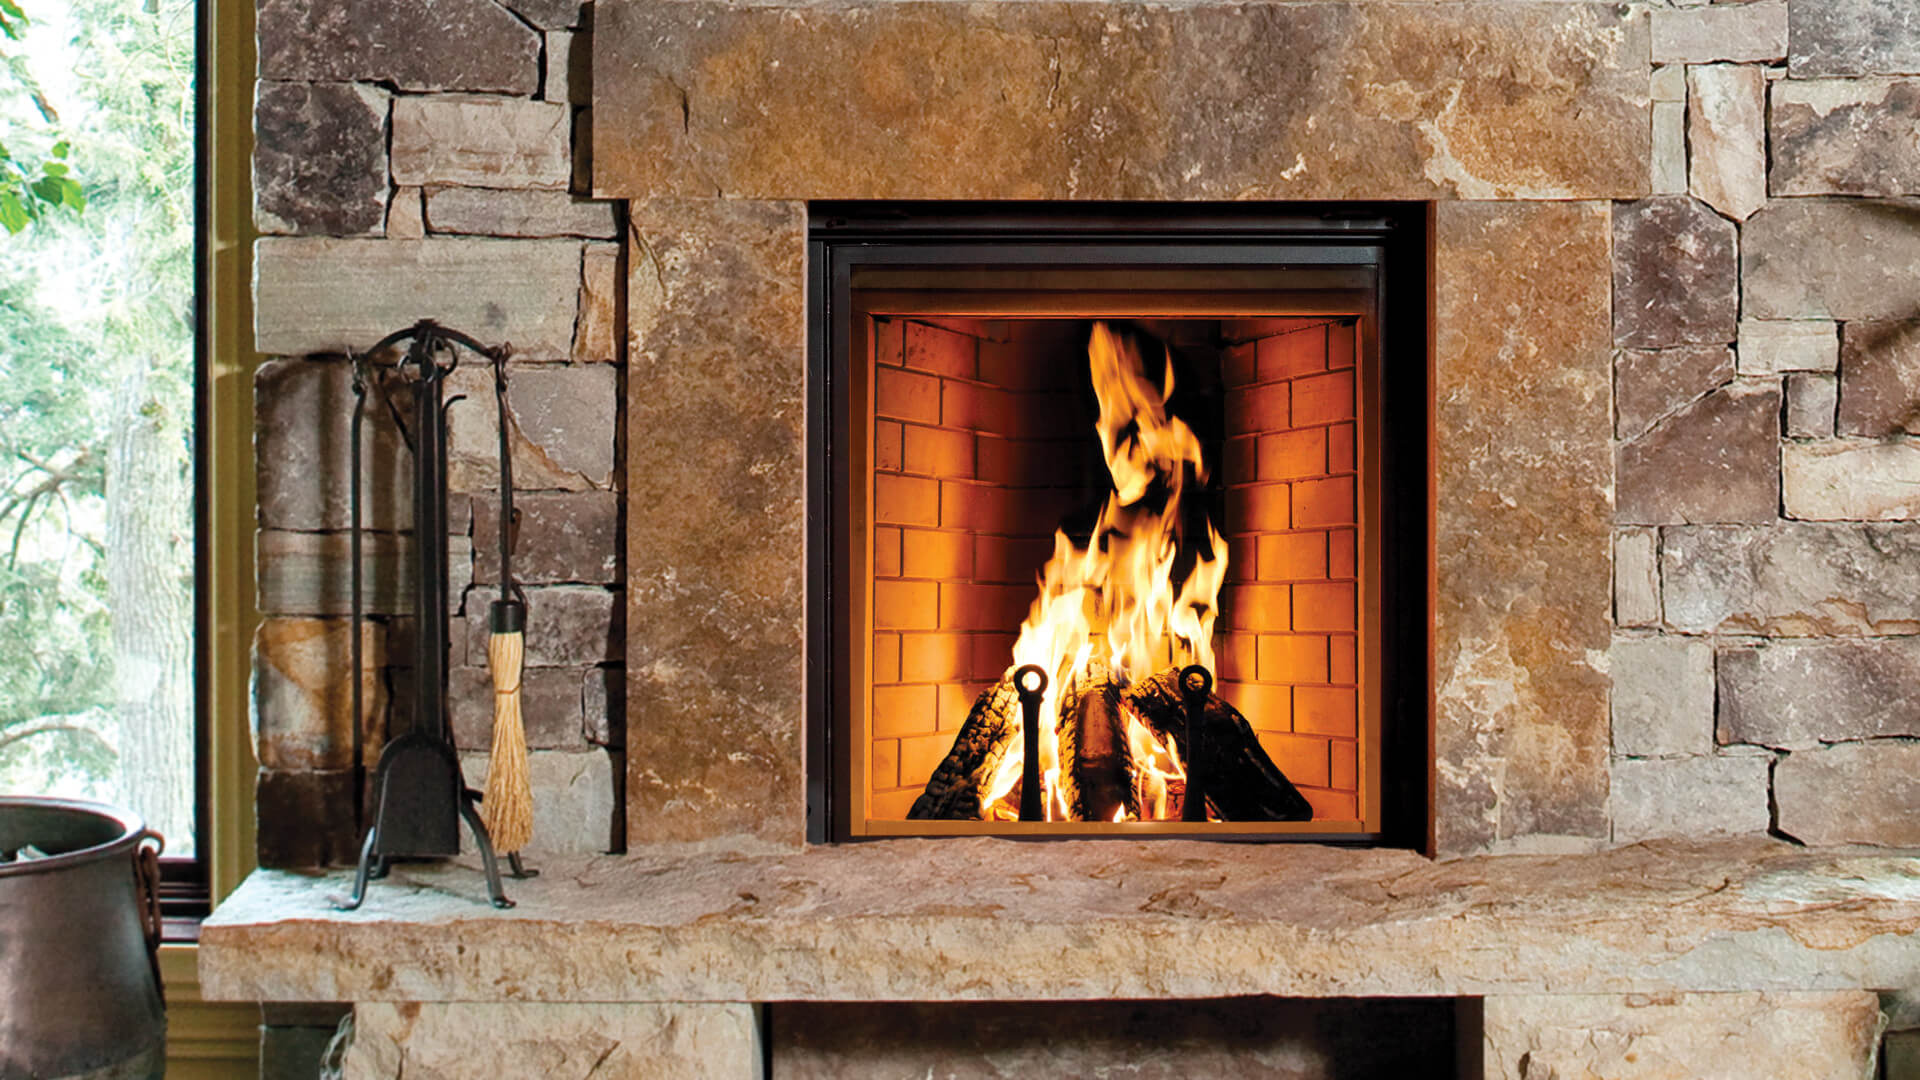 Renaissance fireplaces rumford 1000 wood burning for Renaissance rumford fireplace